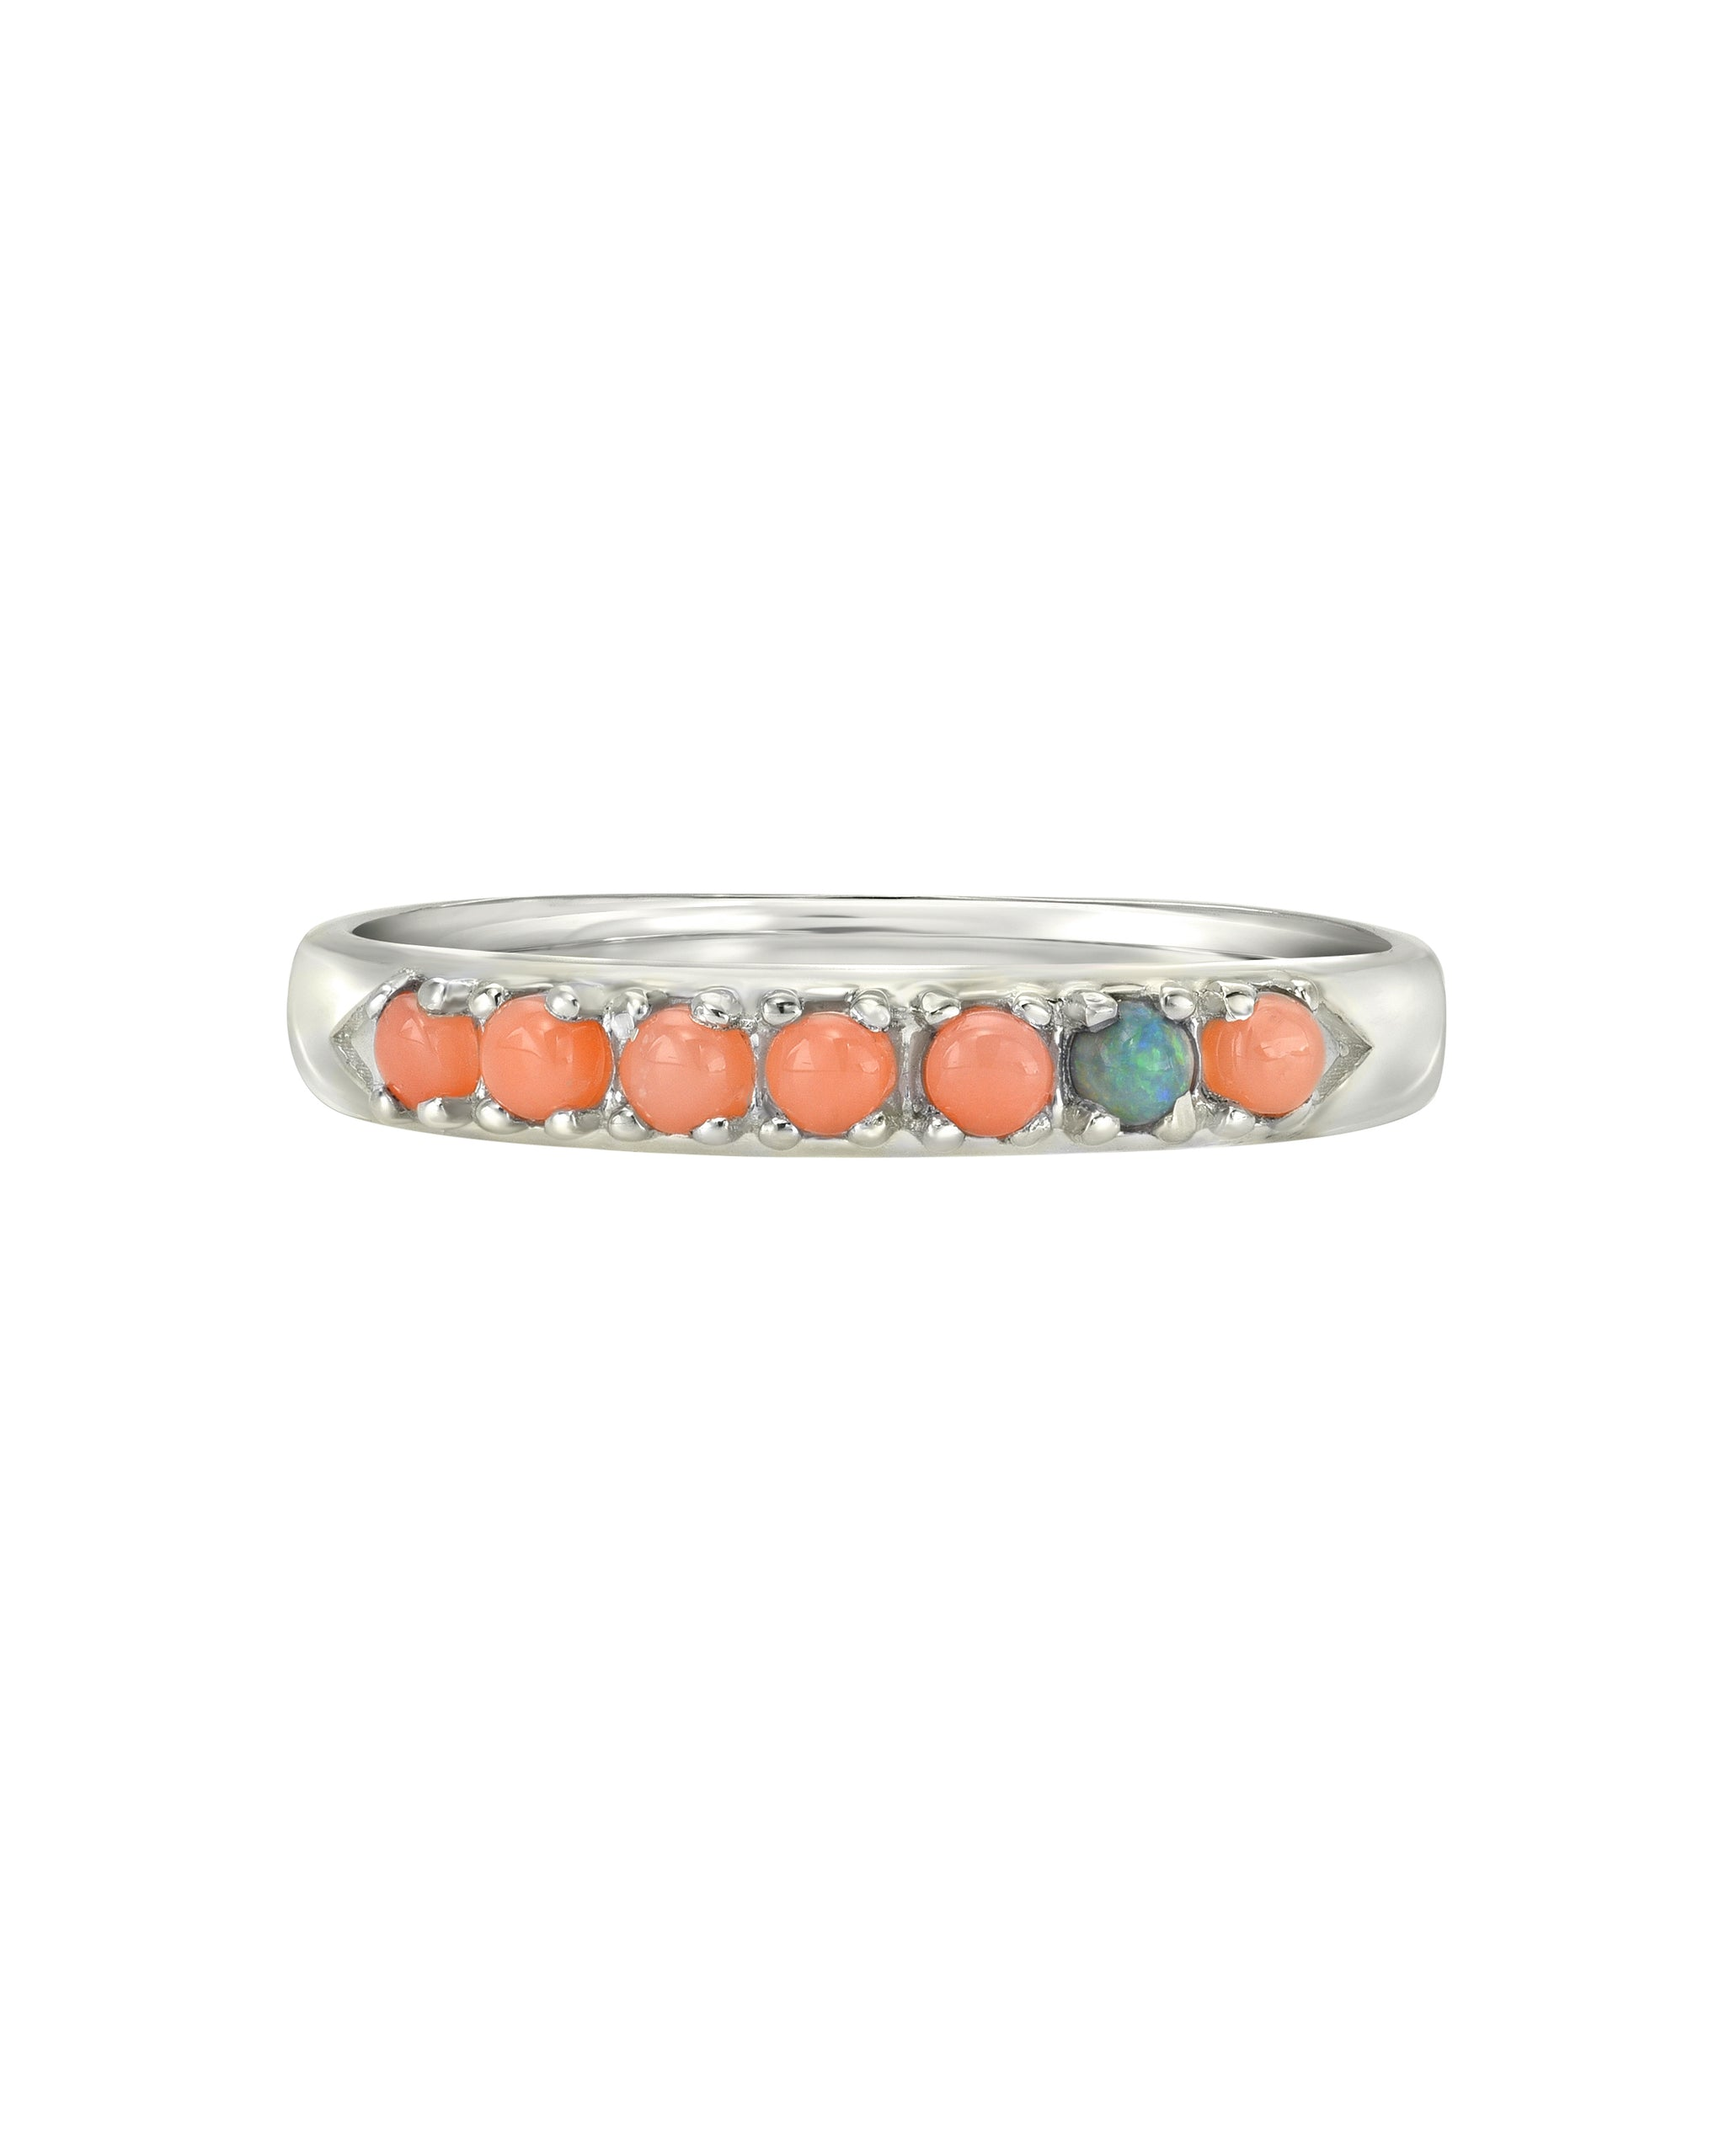 Wylde Ring, Sterling Silver Coral and Opal Chevron Ring, Handmade by Turquoise + Tobacco in Los Angeles California